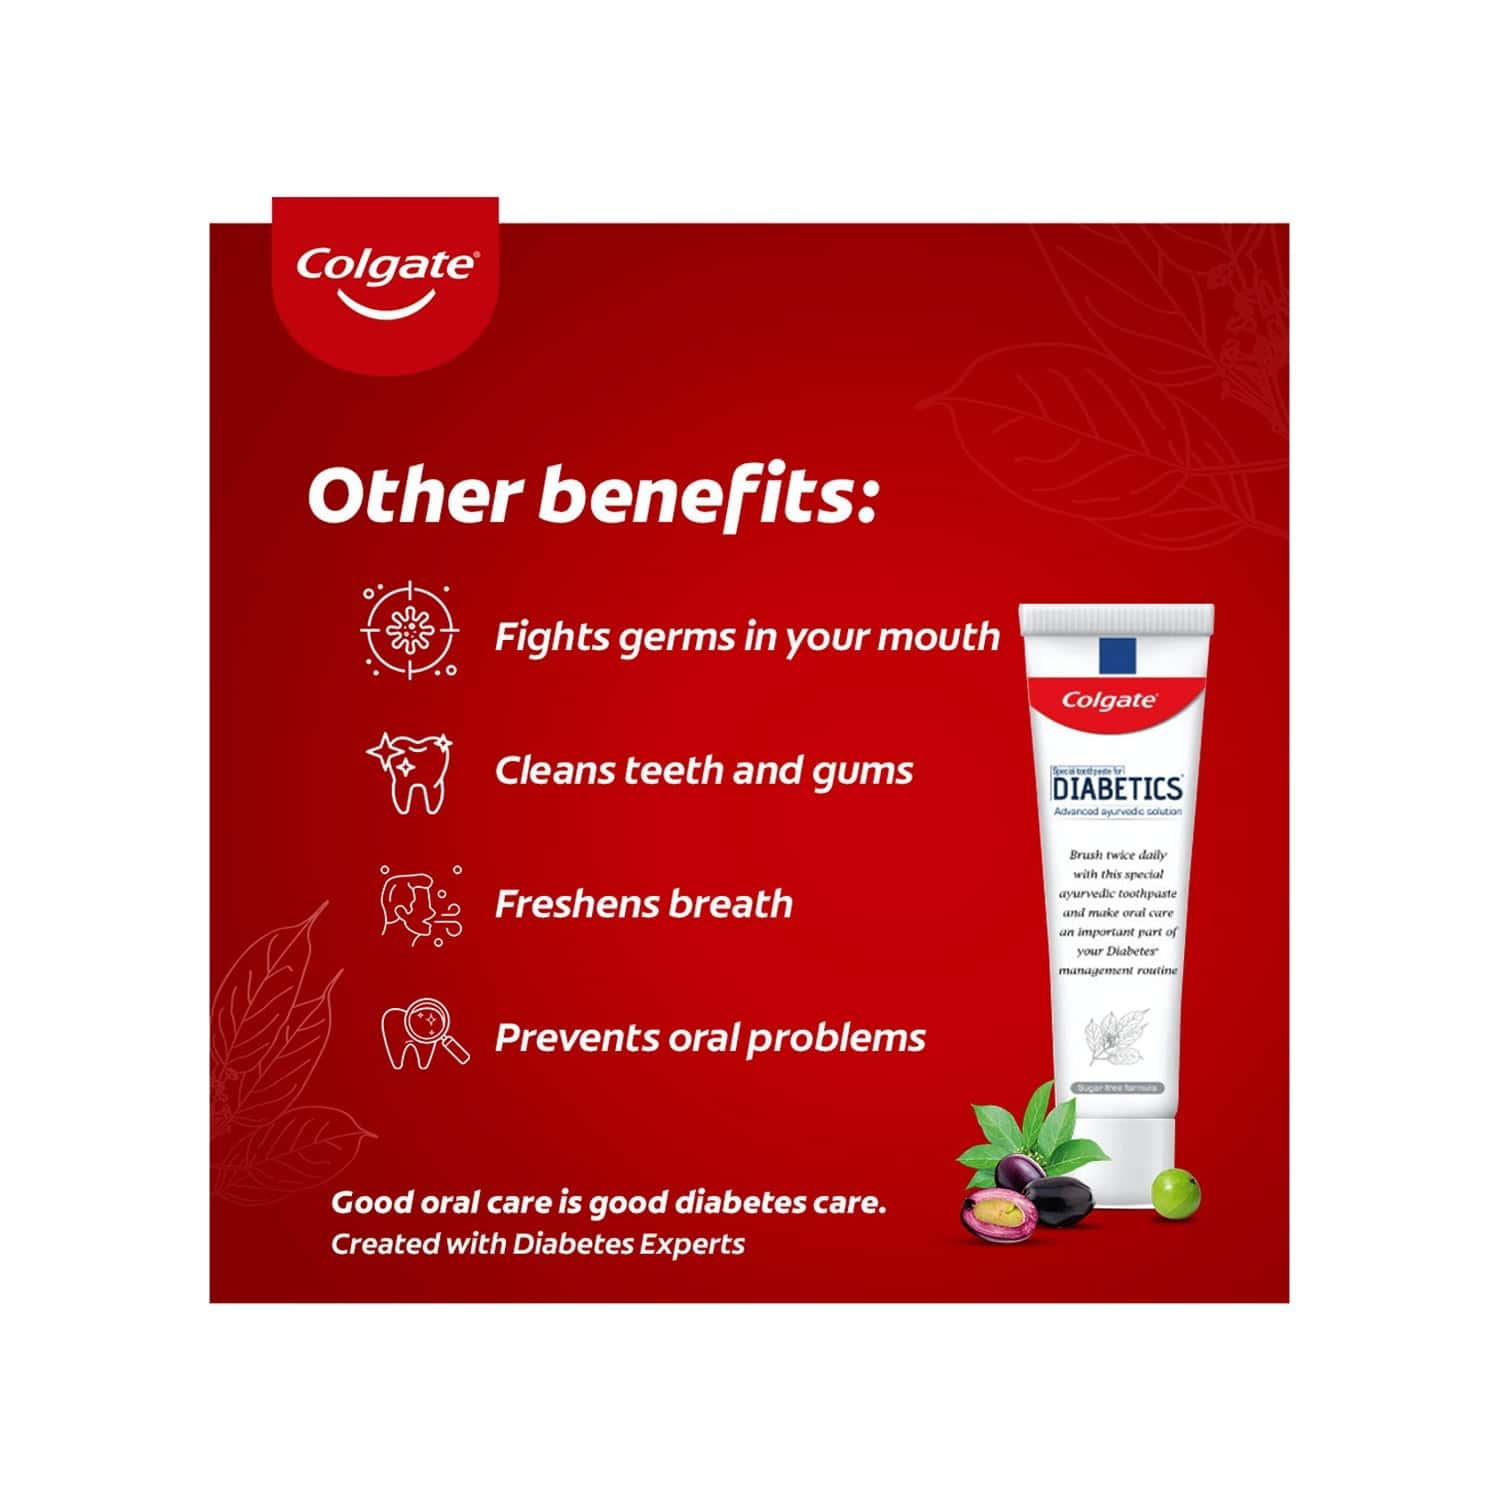 Colgate Diabetics : Special Toothpaste For Diabetics, With Madhunashini And Jamun Seed Extracts (sugar-free Toothpaste), 70g